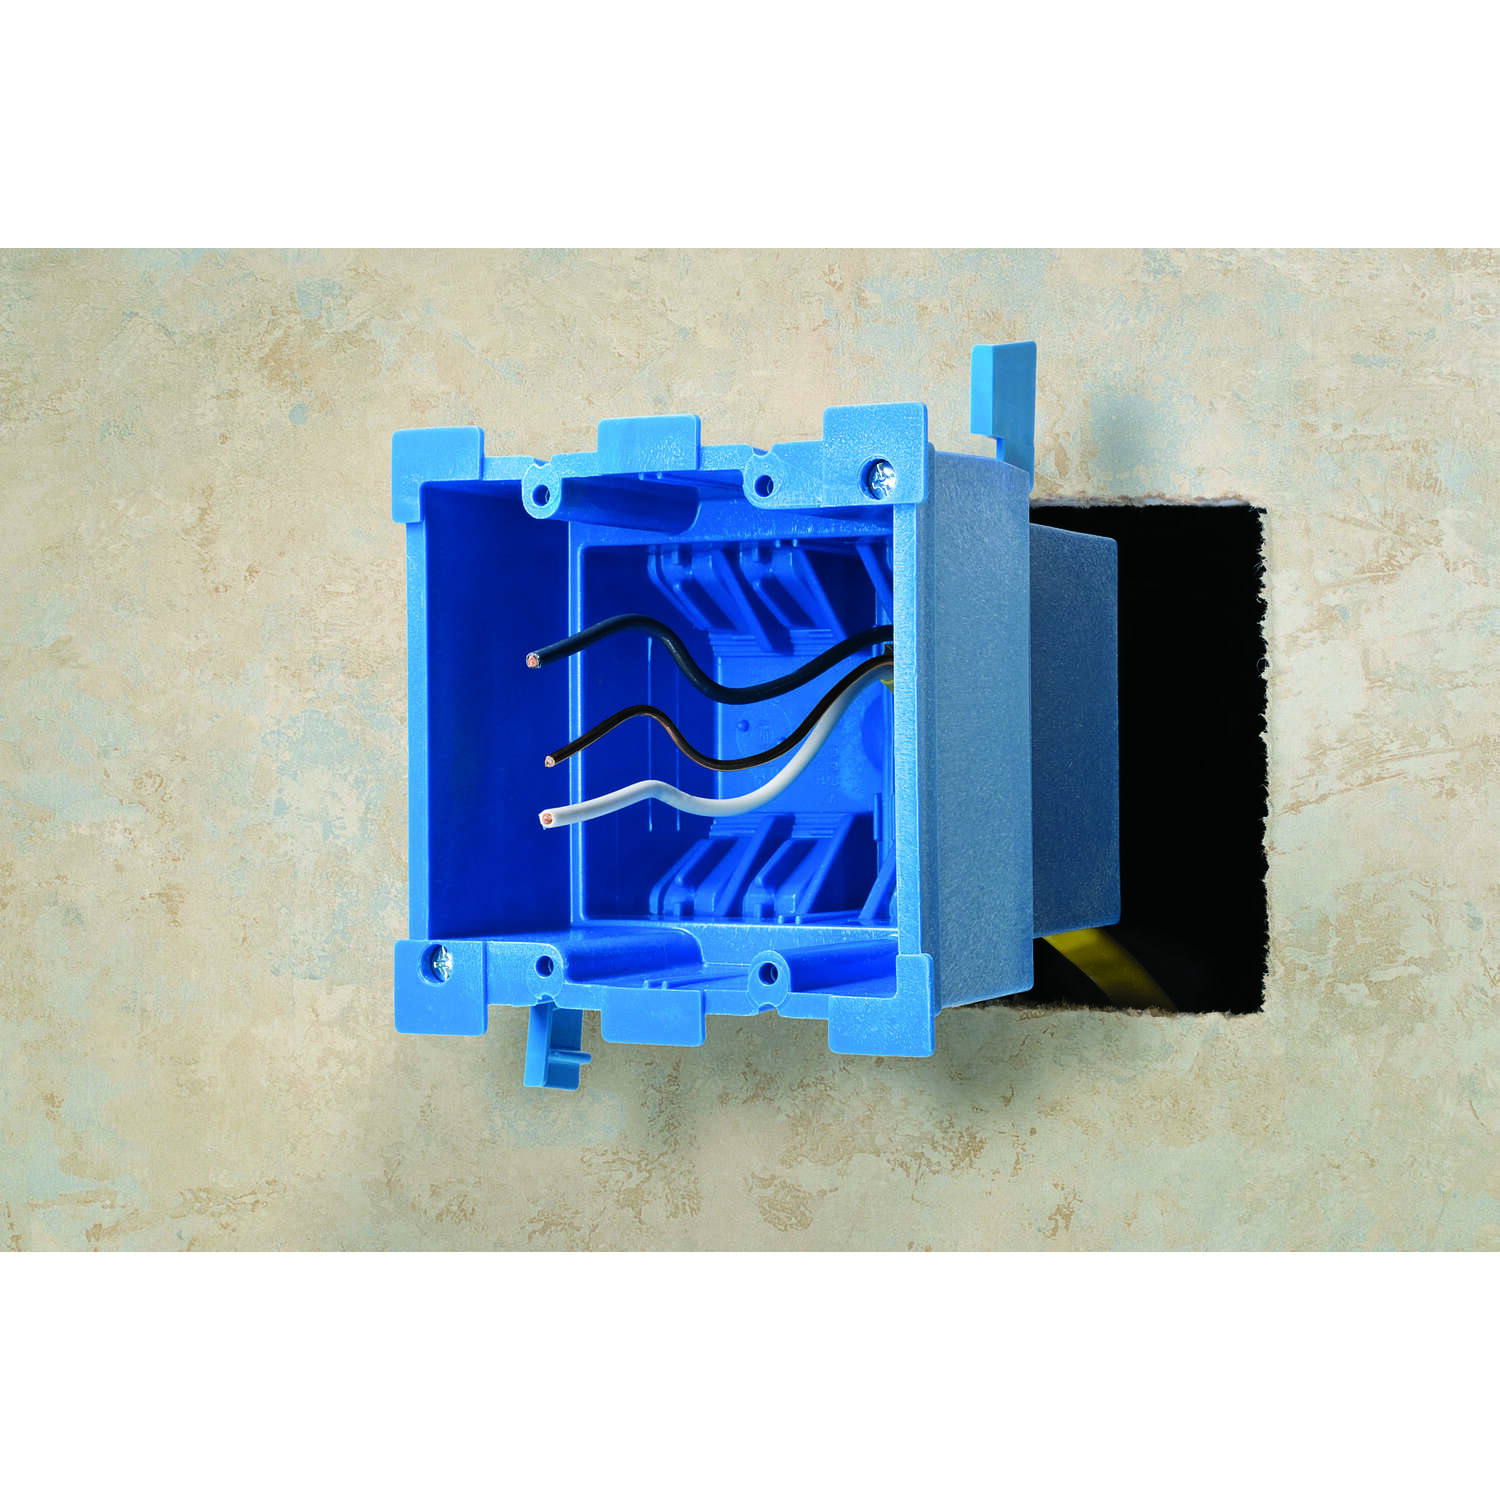 Carlon  Super Blue  3-7/8 in. Square  Thermoplastic  2 gang Outlet Box  2 Gang  Blue